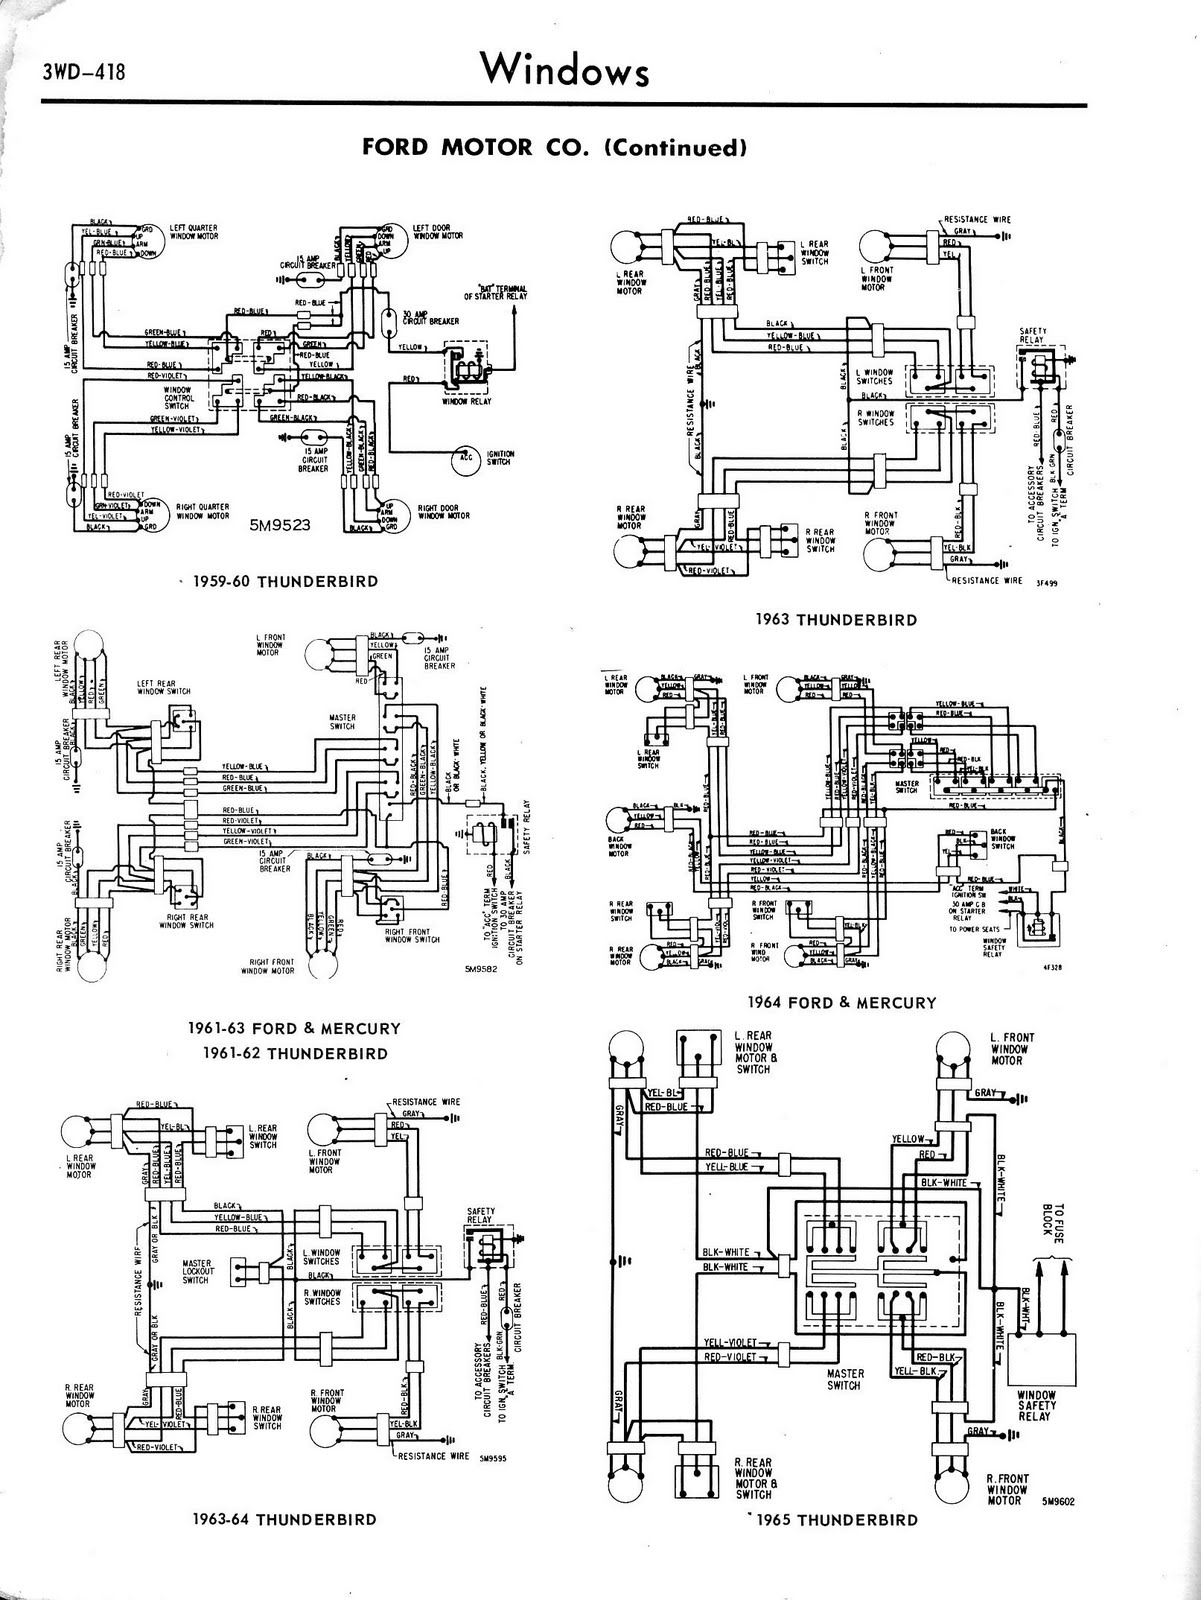 1965 ford thunderbird wiring diagram eTiVnLI 1965 ford thunderbird wiring diagram image details 1965 thunderbird alternator wiring diagram at soozxer.org